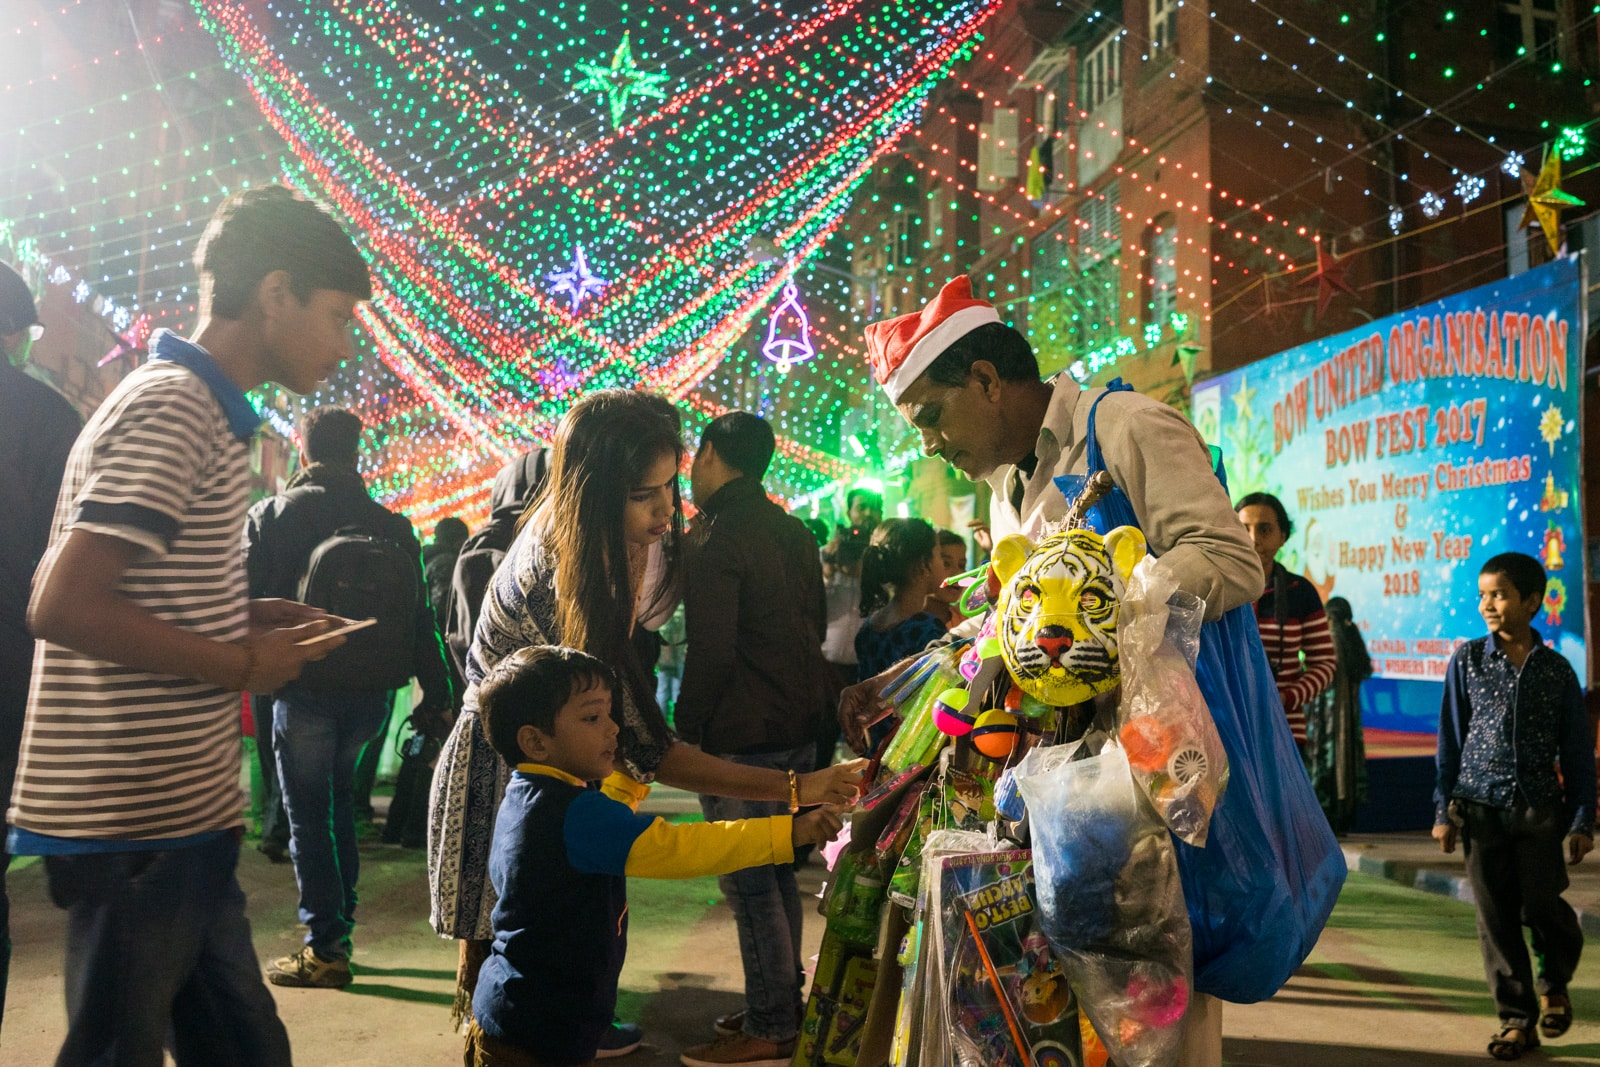 Celebrating Christmas in Kolkata, India - Mother and son buying toys from a street vendor in Barracks, Kolkata - Lost With Purpose travel blog